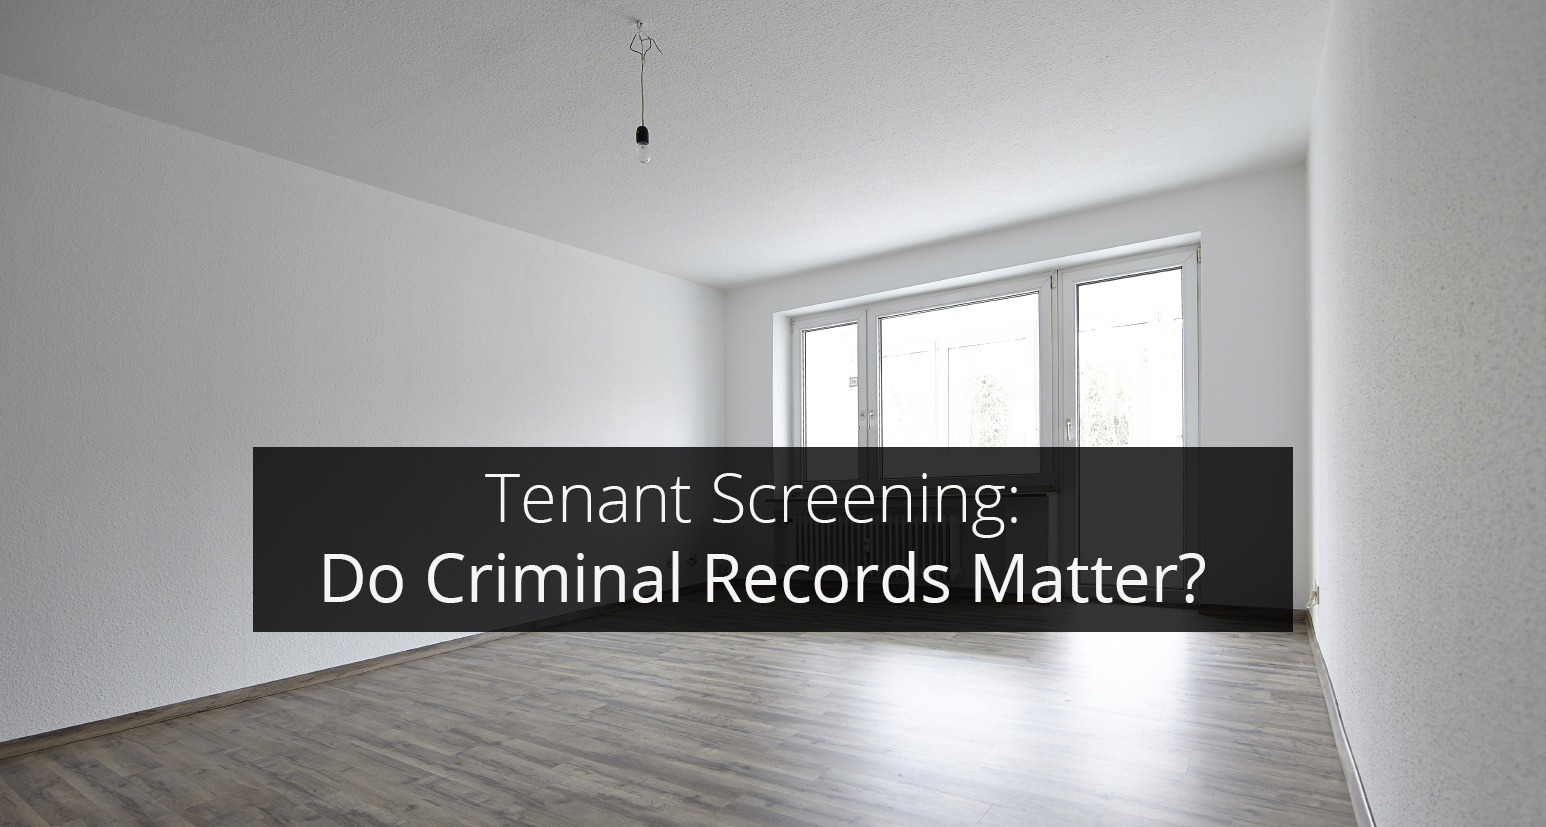 criminal record does matter Does petitioner and applicants record matter i know the applicants criminal history is important wondering if it is the same for the petitioner my husband and i had.